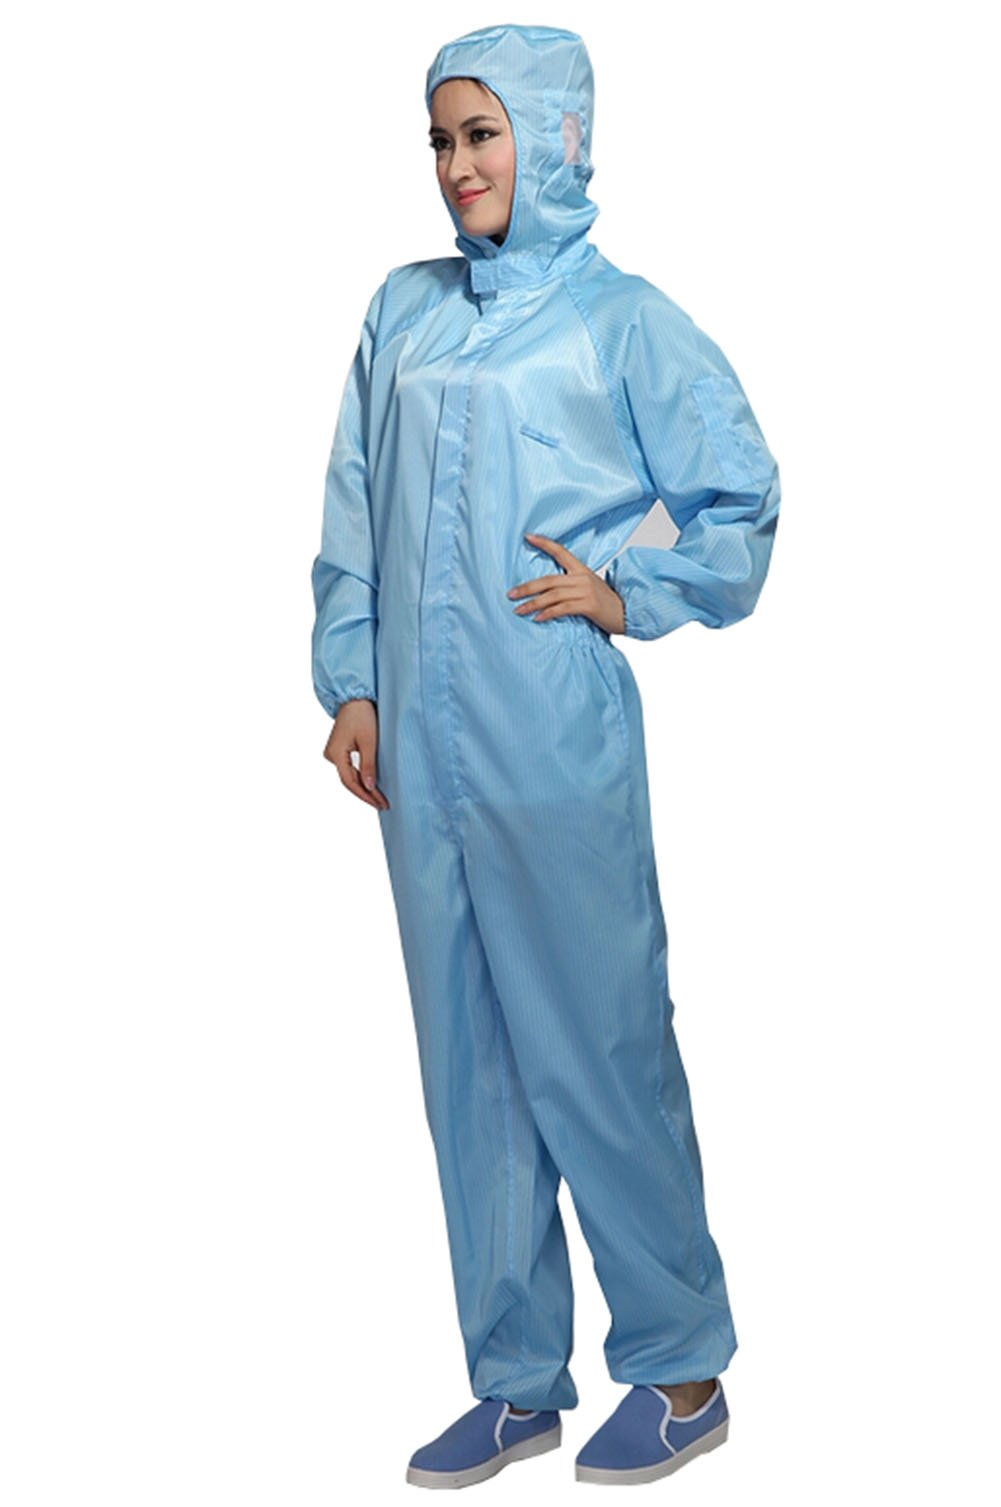 Olyer ESD Lab Zip Up Hooded Anti Static Jumpsuit Coverall Uniform Spray Paint Work Clothes